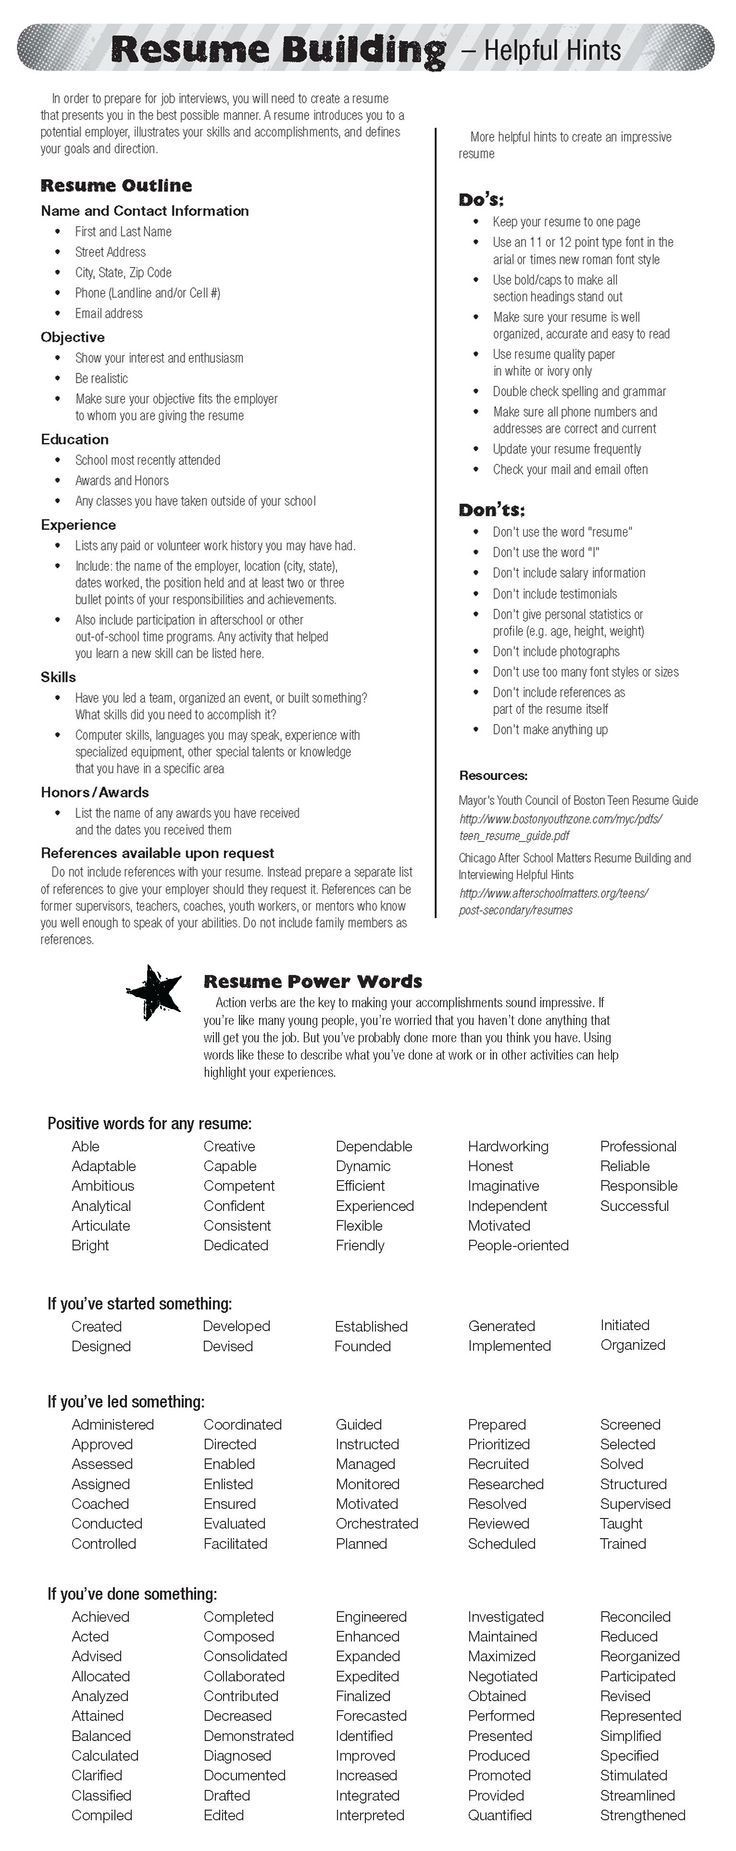 How To Make A Perfect Resume Step By Step Fair 27 Best Education Images On Pinterest  Gym Personal Development .